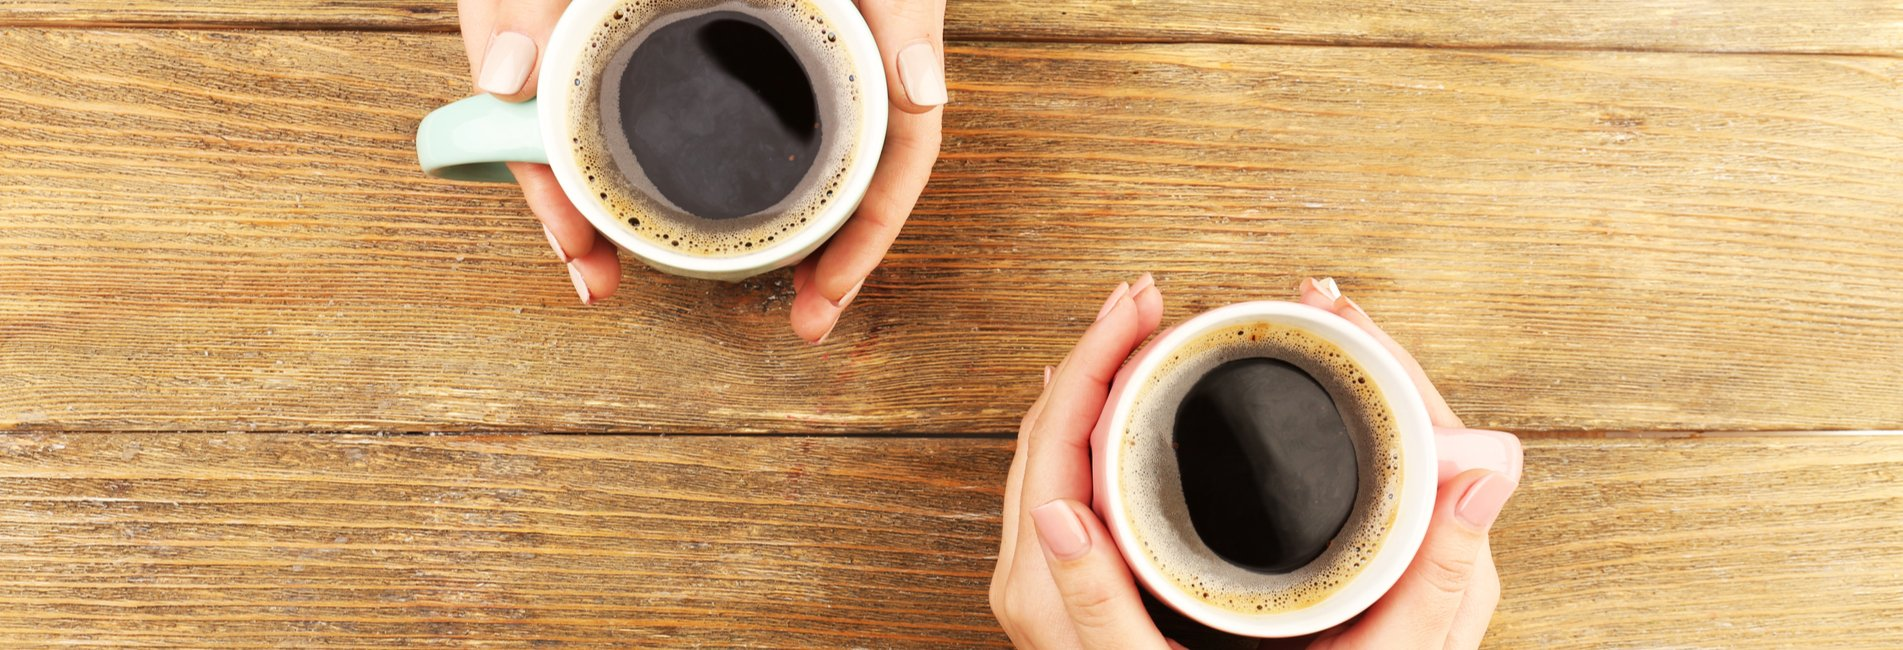 Coffee Can Rewire Your Brain for Addiction Resurgence – Two cups of coffee in hands are pictured. There is a relationship between coffee and addiction, so if you're struggling with any kind of addiction, a treatment center can help.